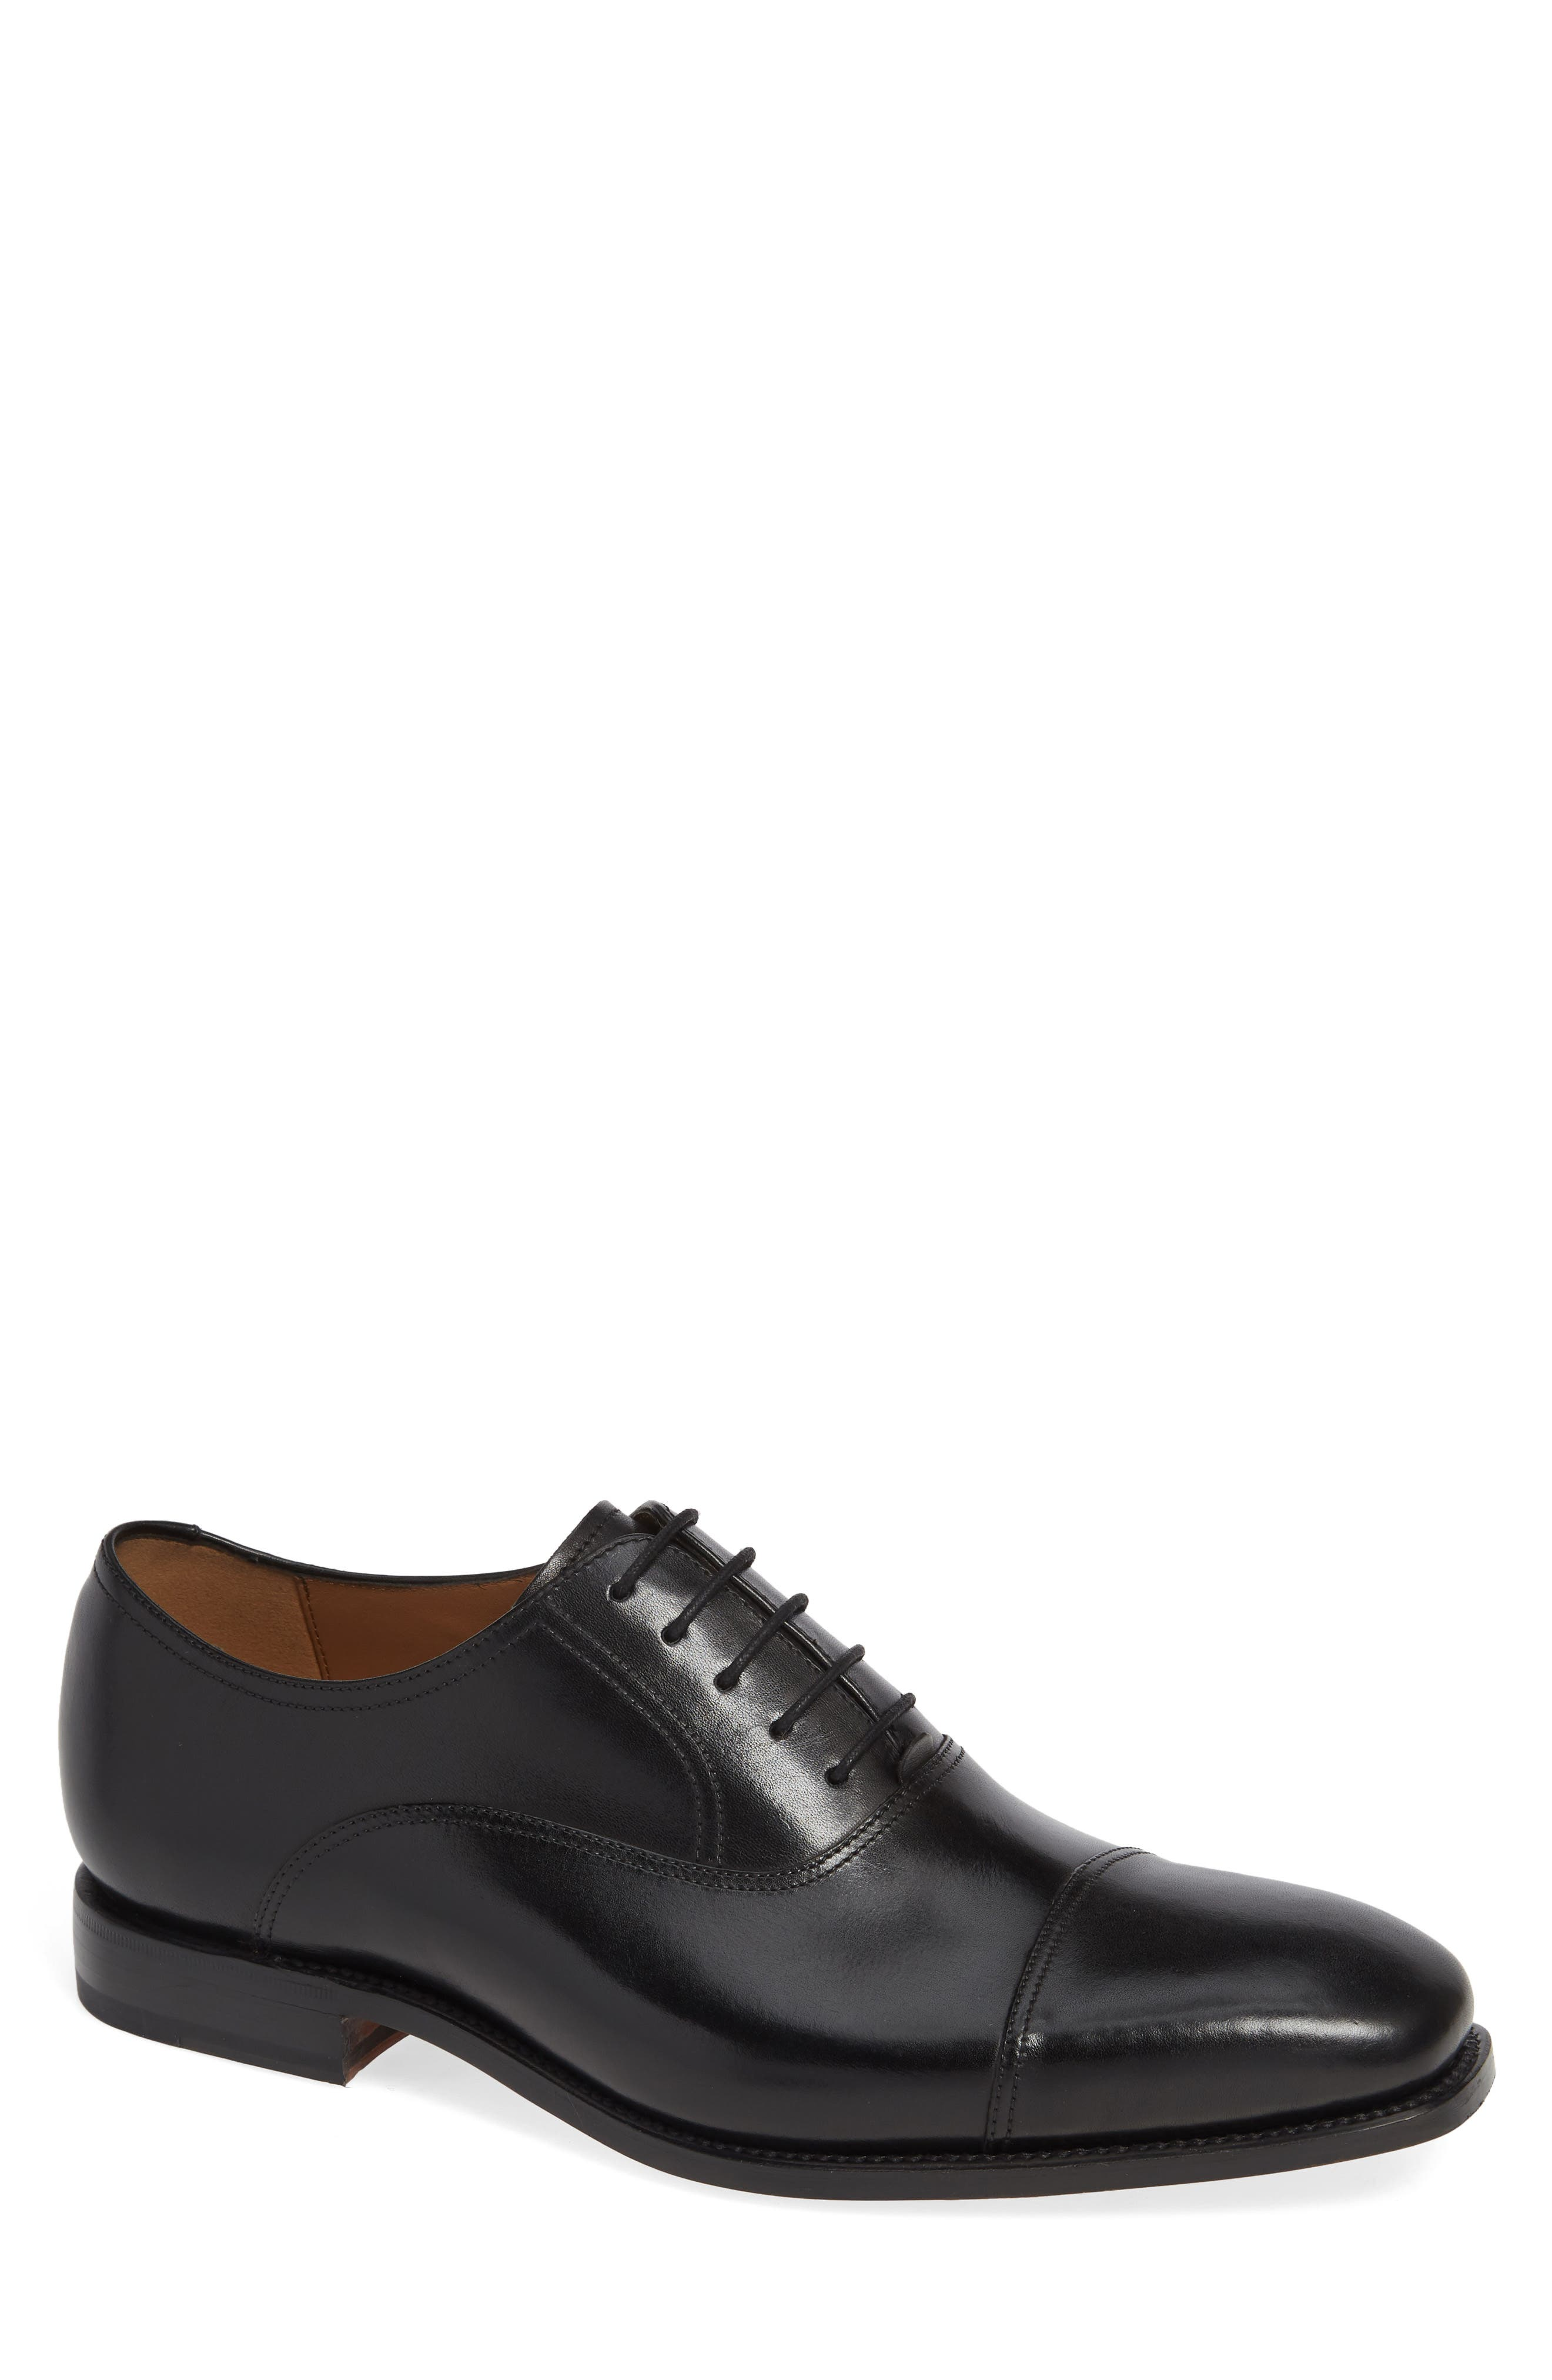 Tiburon Cap Toe Oxford,                             Main thumbnail 1, color,                             BLACK LEATHER